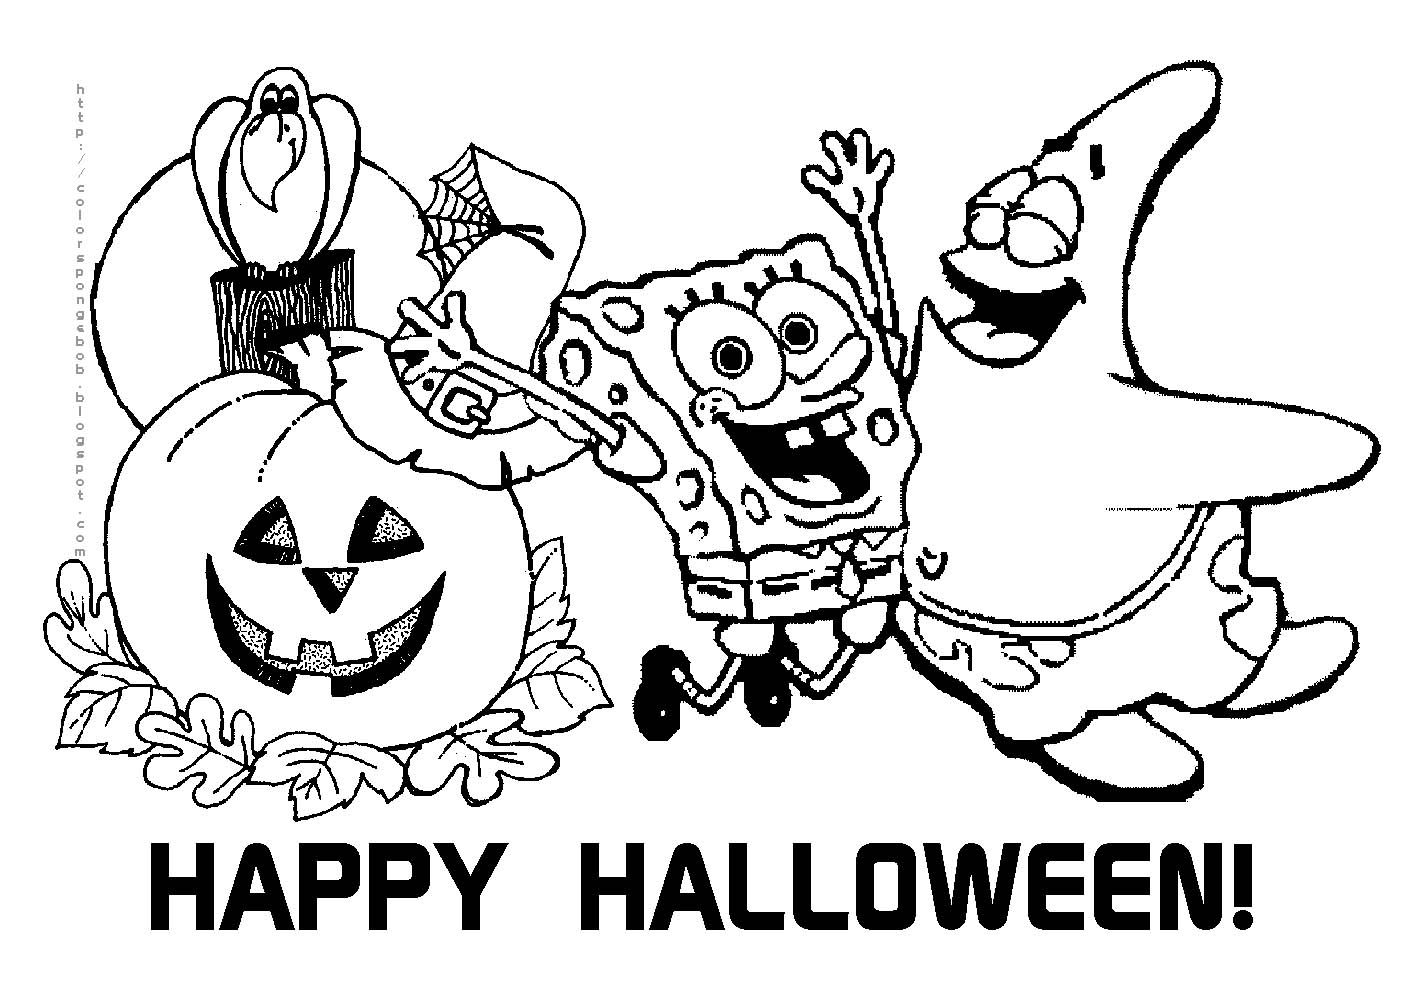 Printable coloring pages spongebob - Free Printable Halloween Calendar Halloween Spongebob Squarepants Coloring Sheet Free